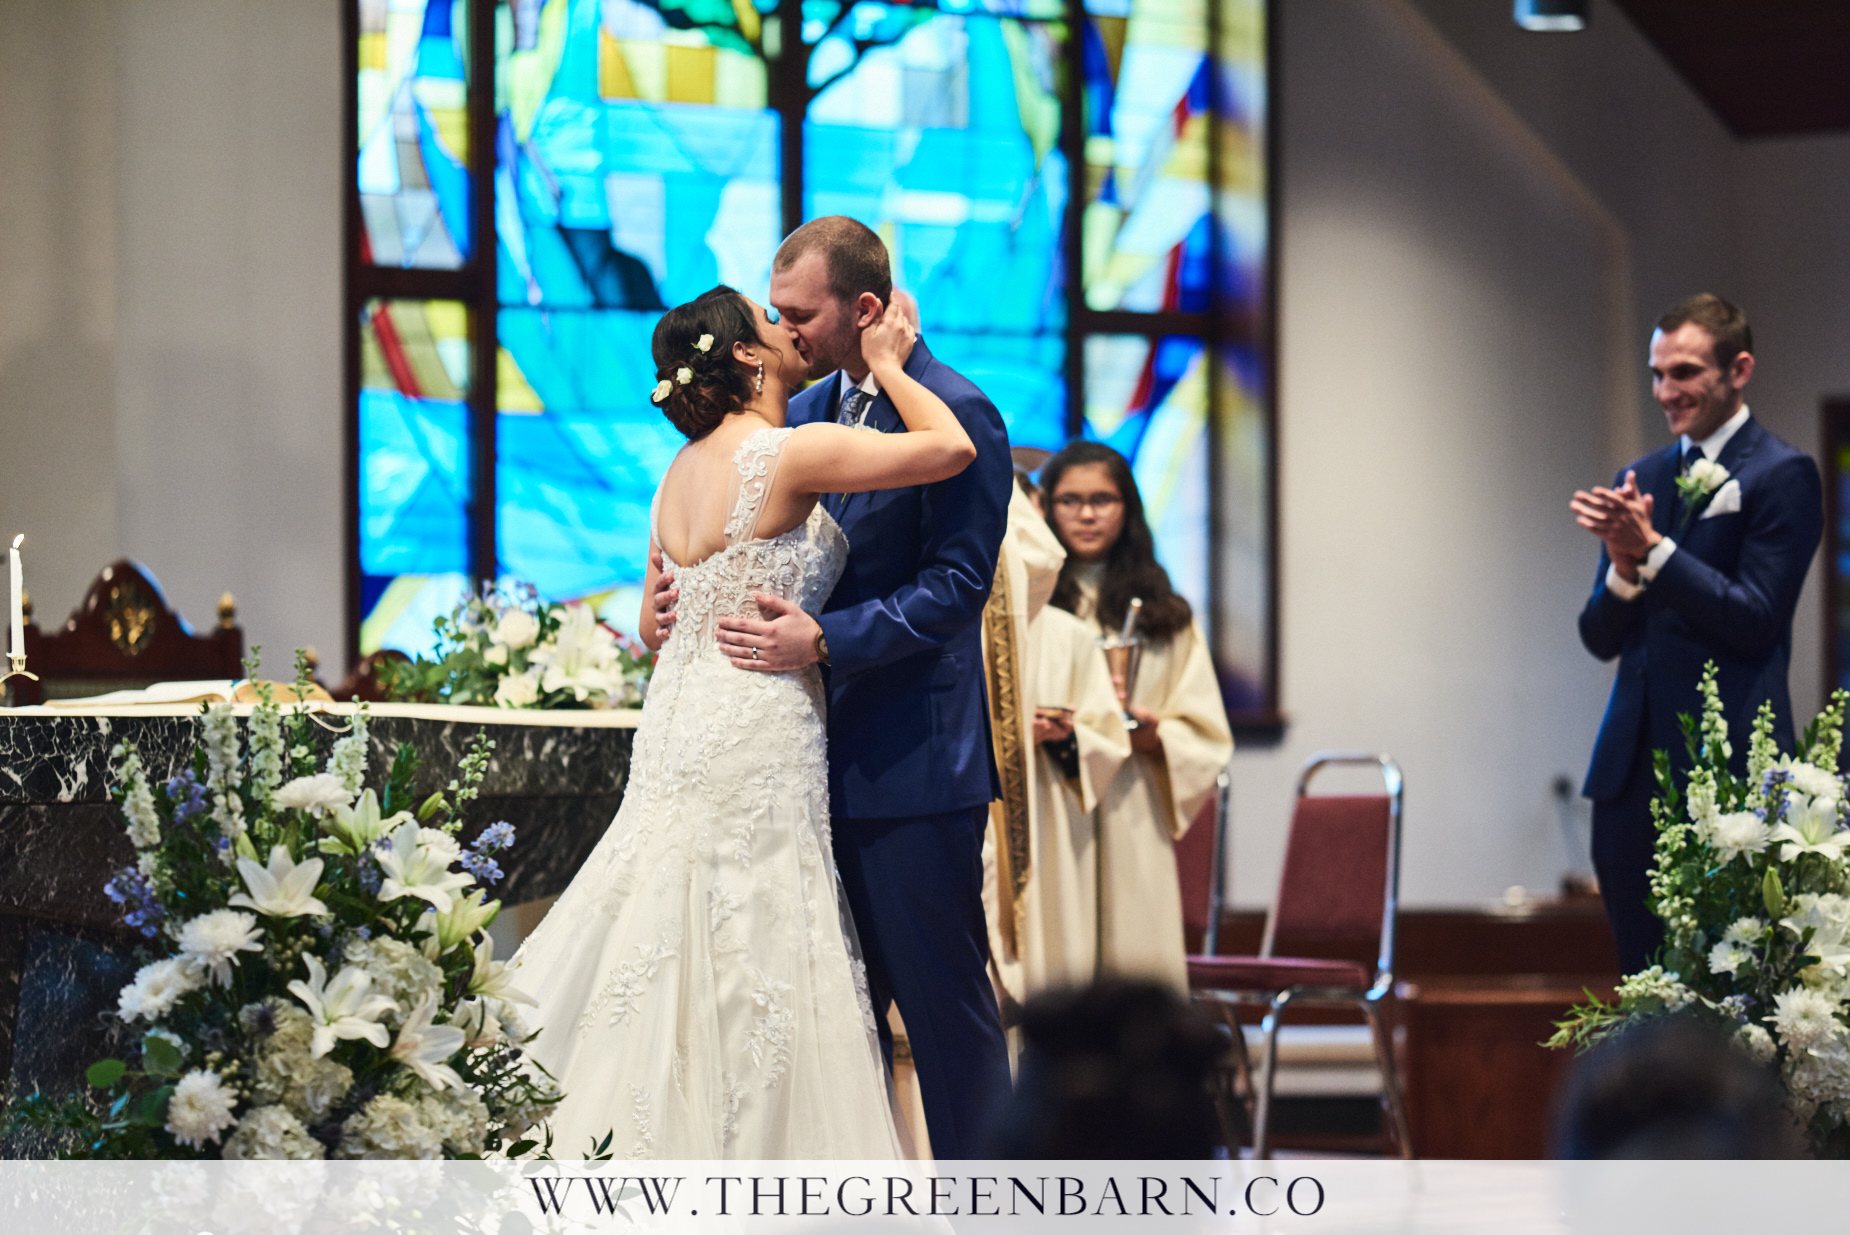 Bride and Groom First Kiss at a Church Ceremony at St Rose of Lima Parish Photo by Cate Bligh of The Green Barn Wedding Photography LLC